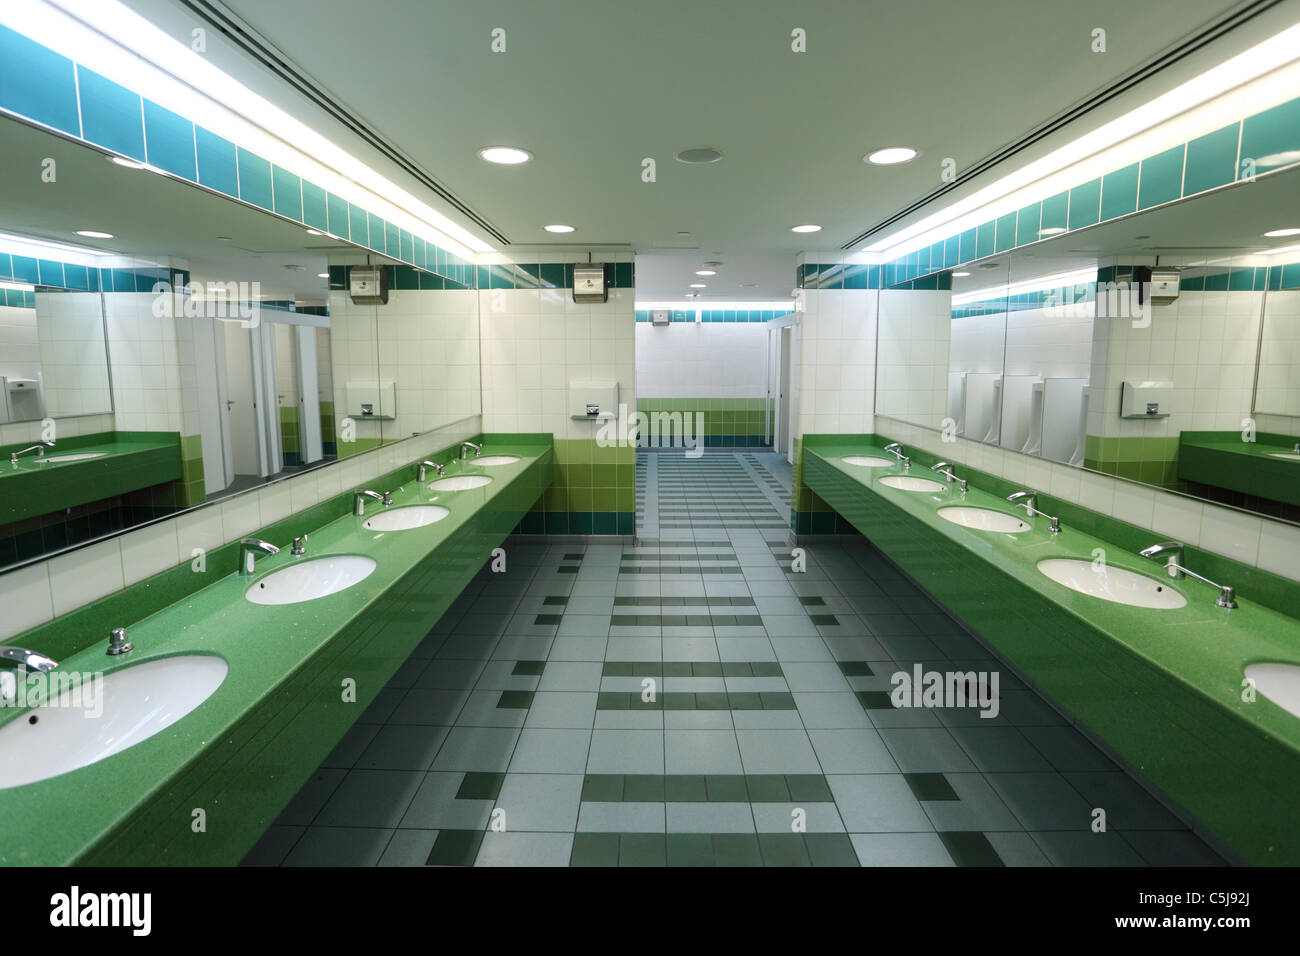 public bathroom design interior of a modern restroom stock photo royalty 14649